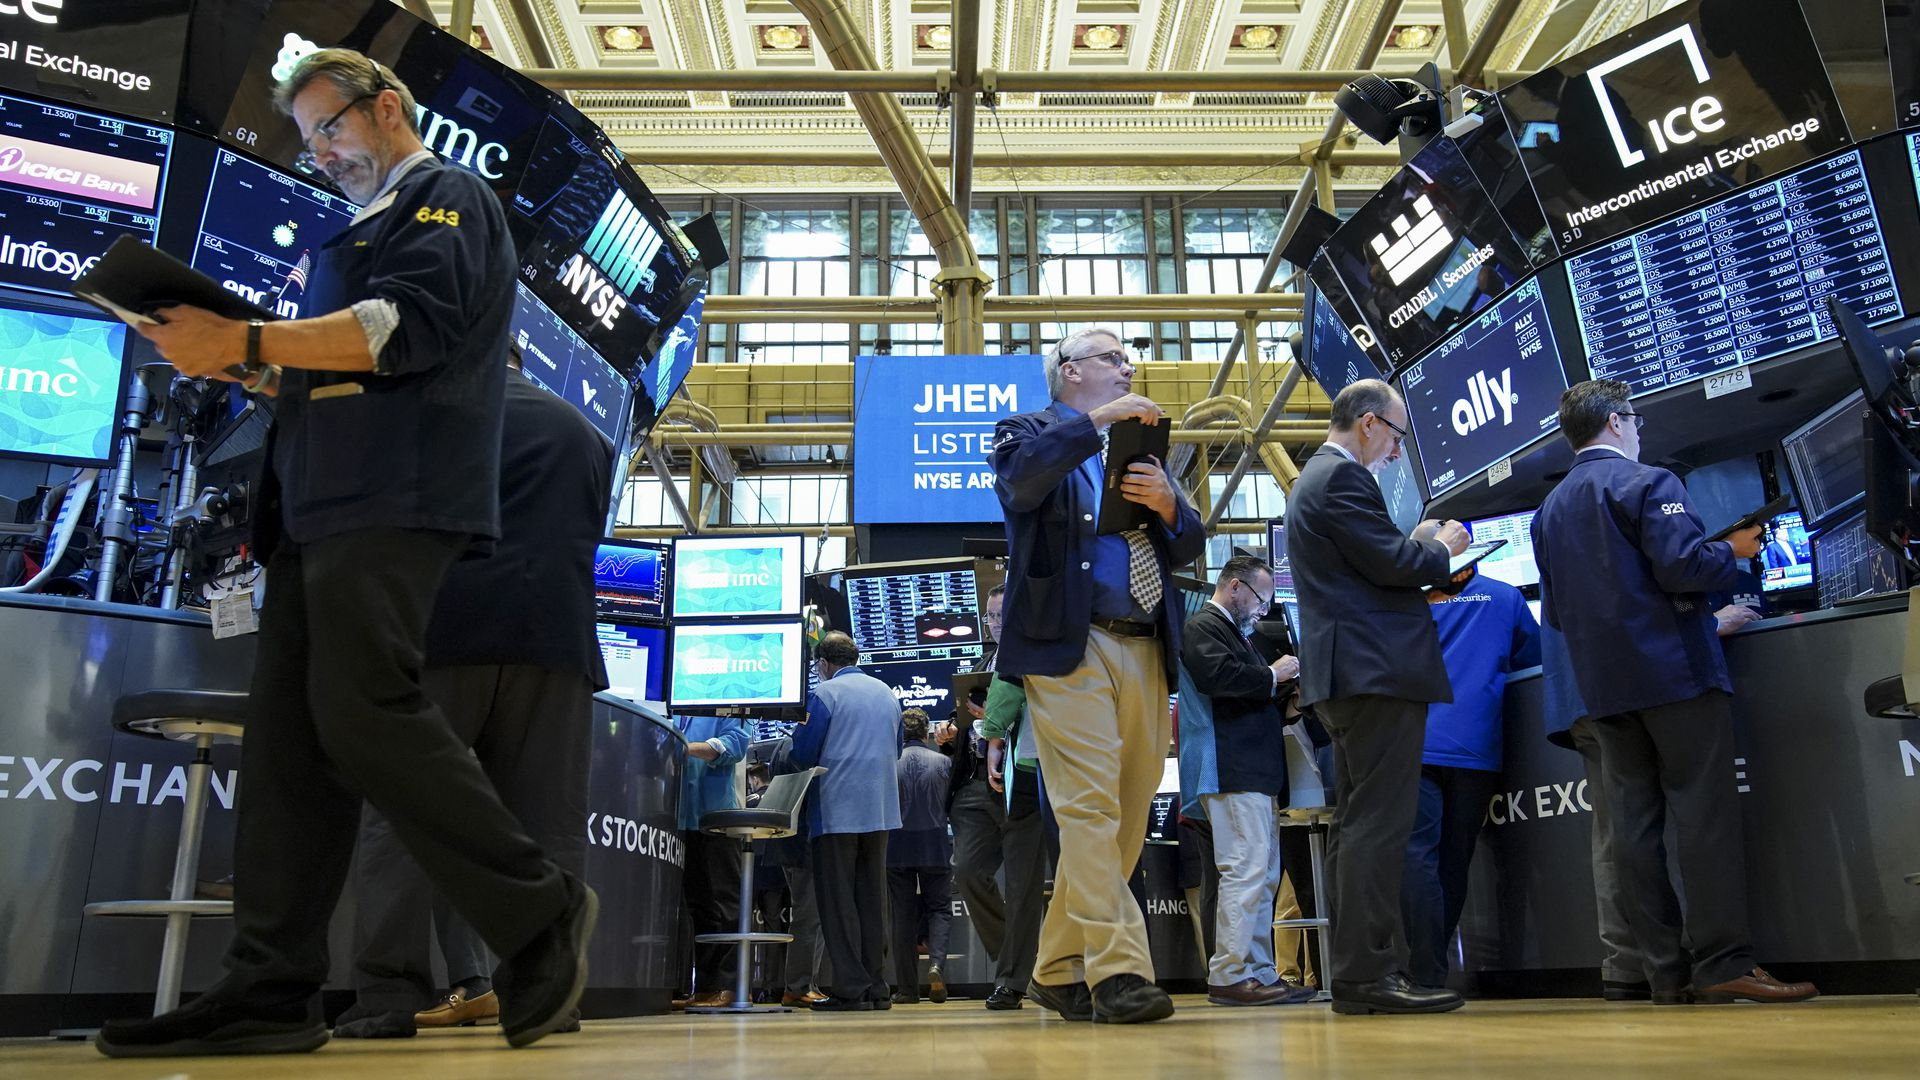 In this image, the camera looks up from the New York Stock Exchange floor as men walk across the floor and look at screens.